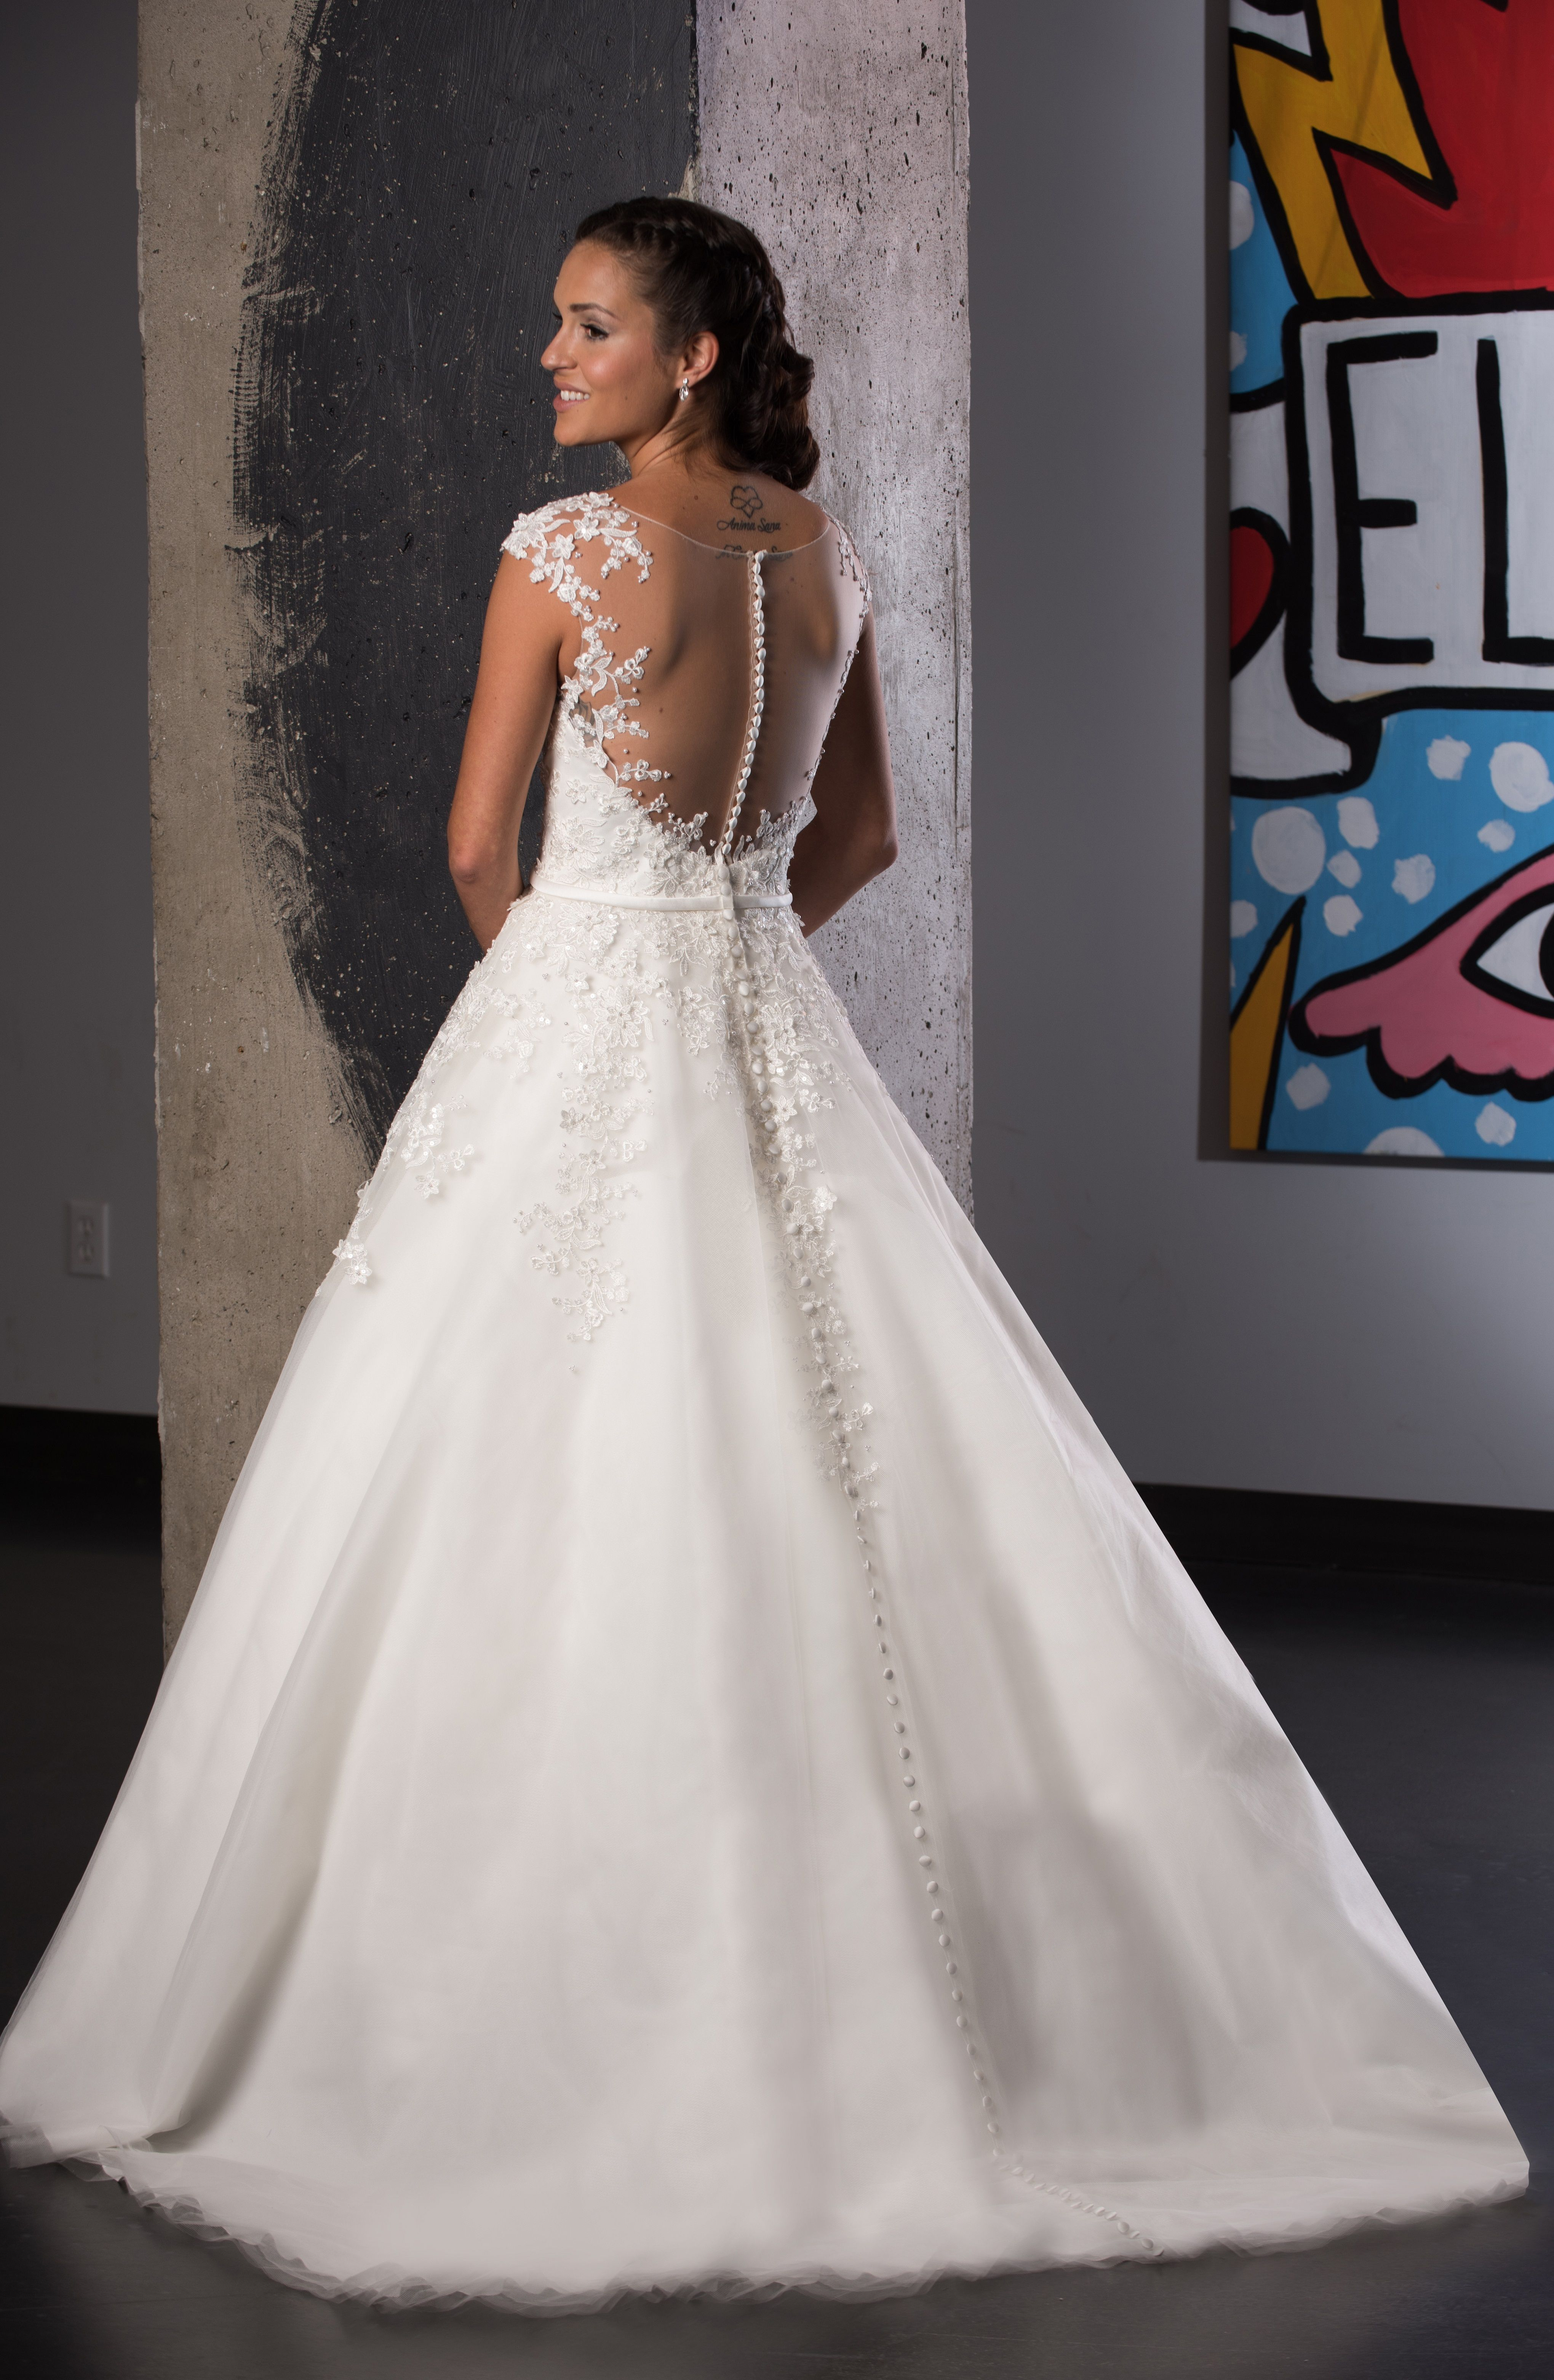 How Pretty Is This Illusion Back Wedding Gown With Buttons Running All The Way Down The Train Bridala Flower Girl Dresses Wedding Dresses Lace Wedding Dresses [ 6248 x 4080 Pixel ]